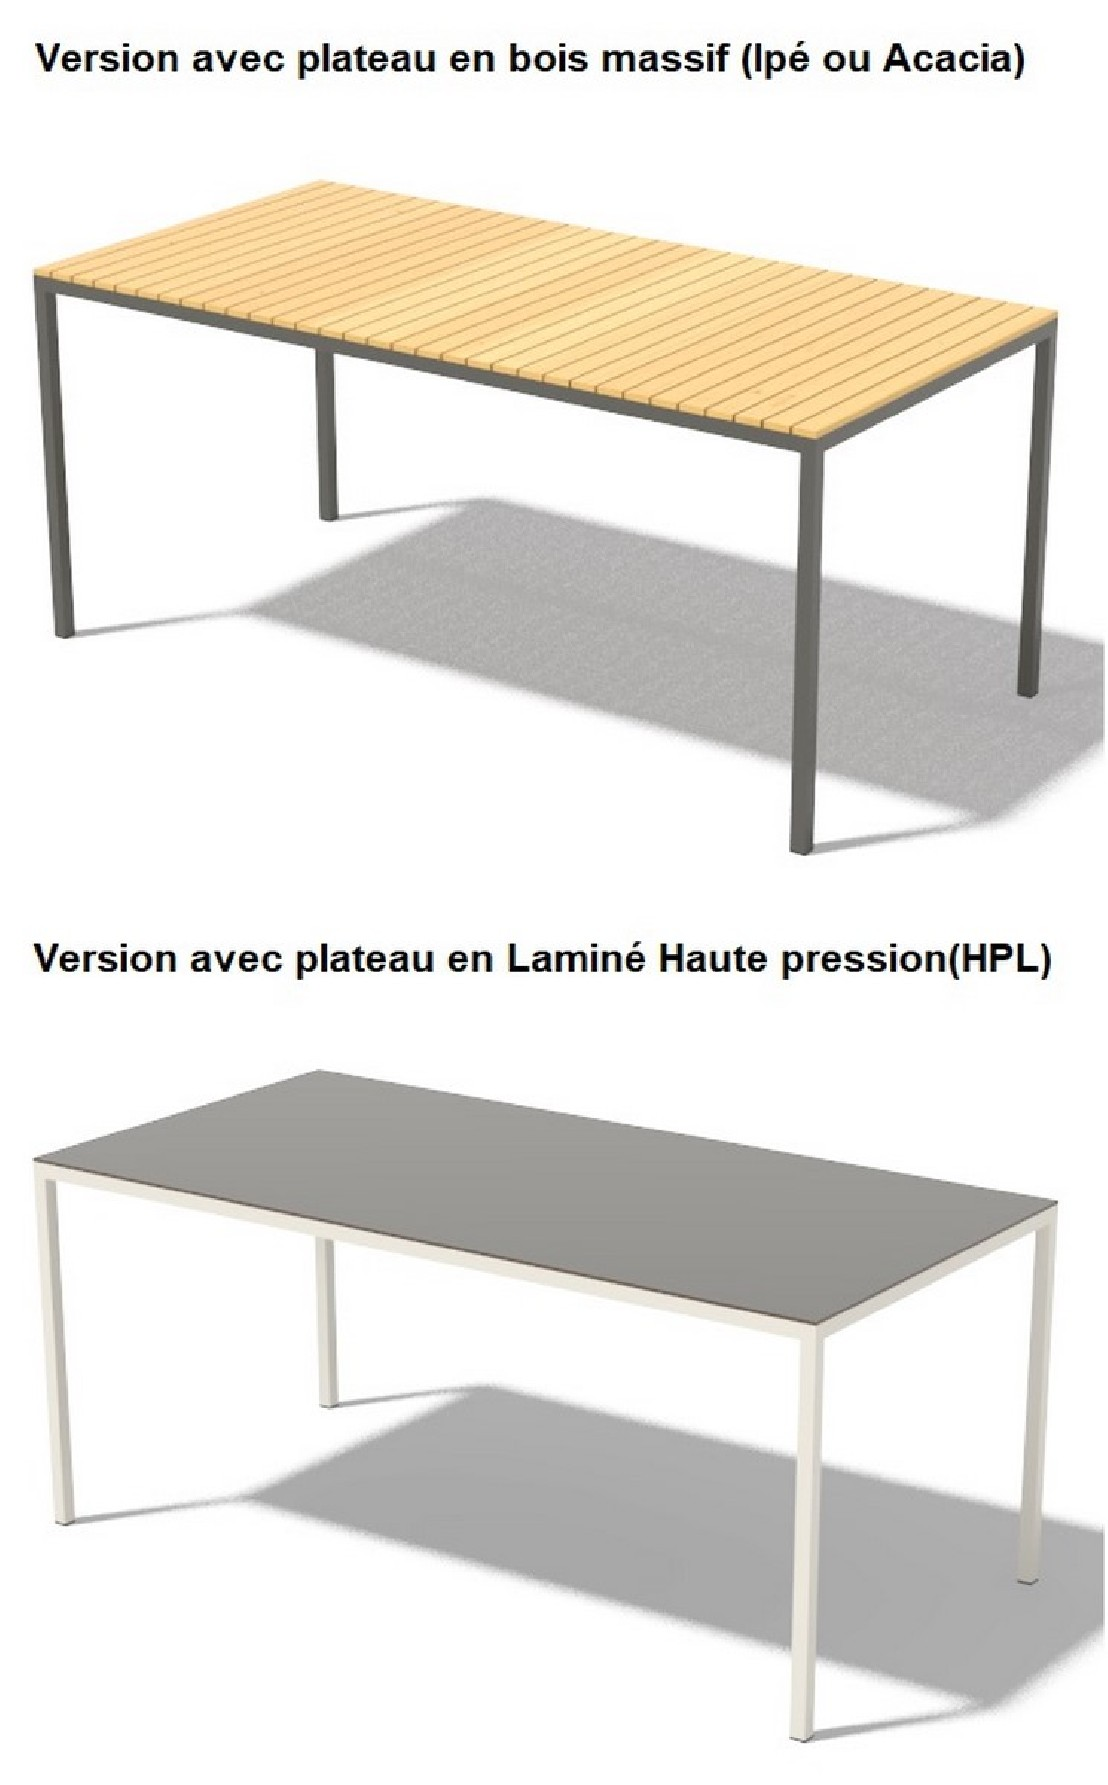 table de jardin plateau hpl cool table de jardin sena cm en bois massif et plateau hpl de. Black Bedroom Furniture Sets. Home Design Ideas